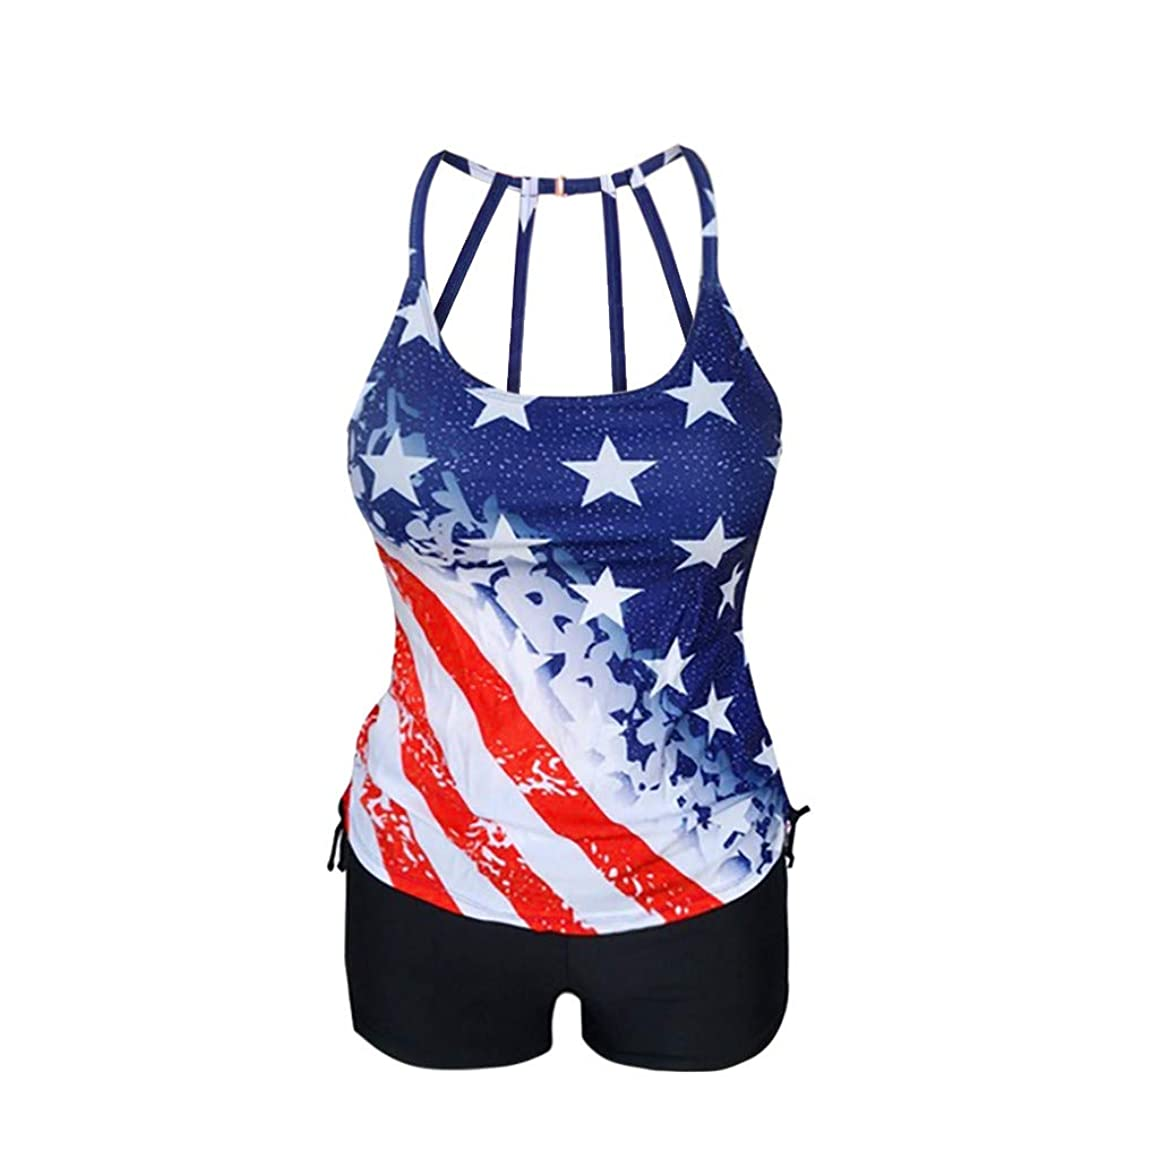 ??Sumeimiya Women's Independence Day Swimsuit, Sexy Stretchy Patchwork One Piece Bikini American Flag Print Swimwear